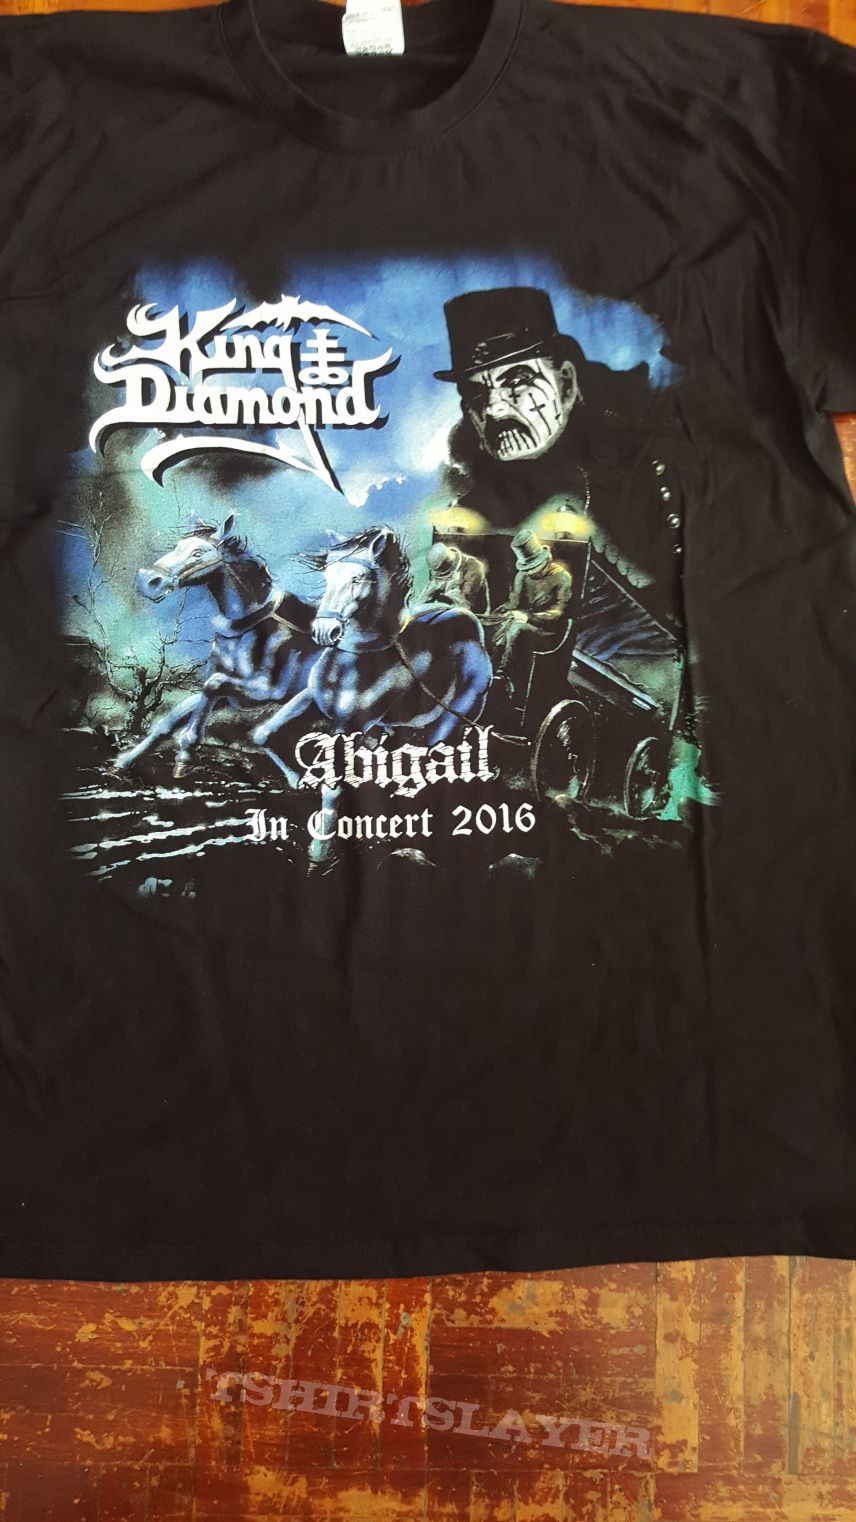 King Diamond - Abigail In Concert 2016